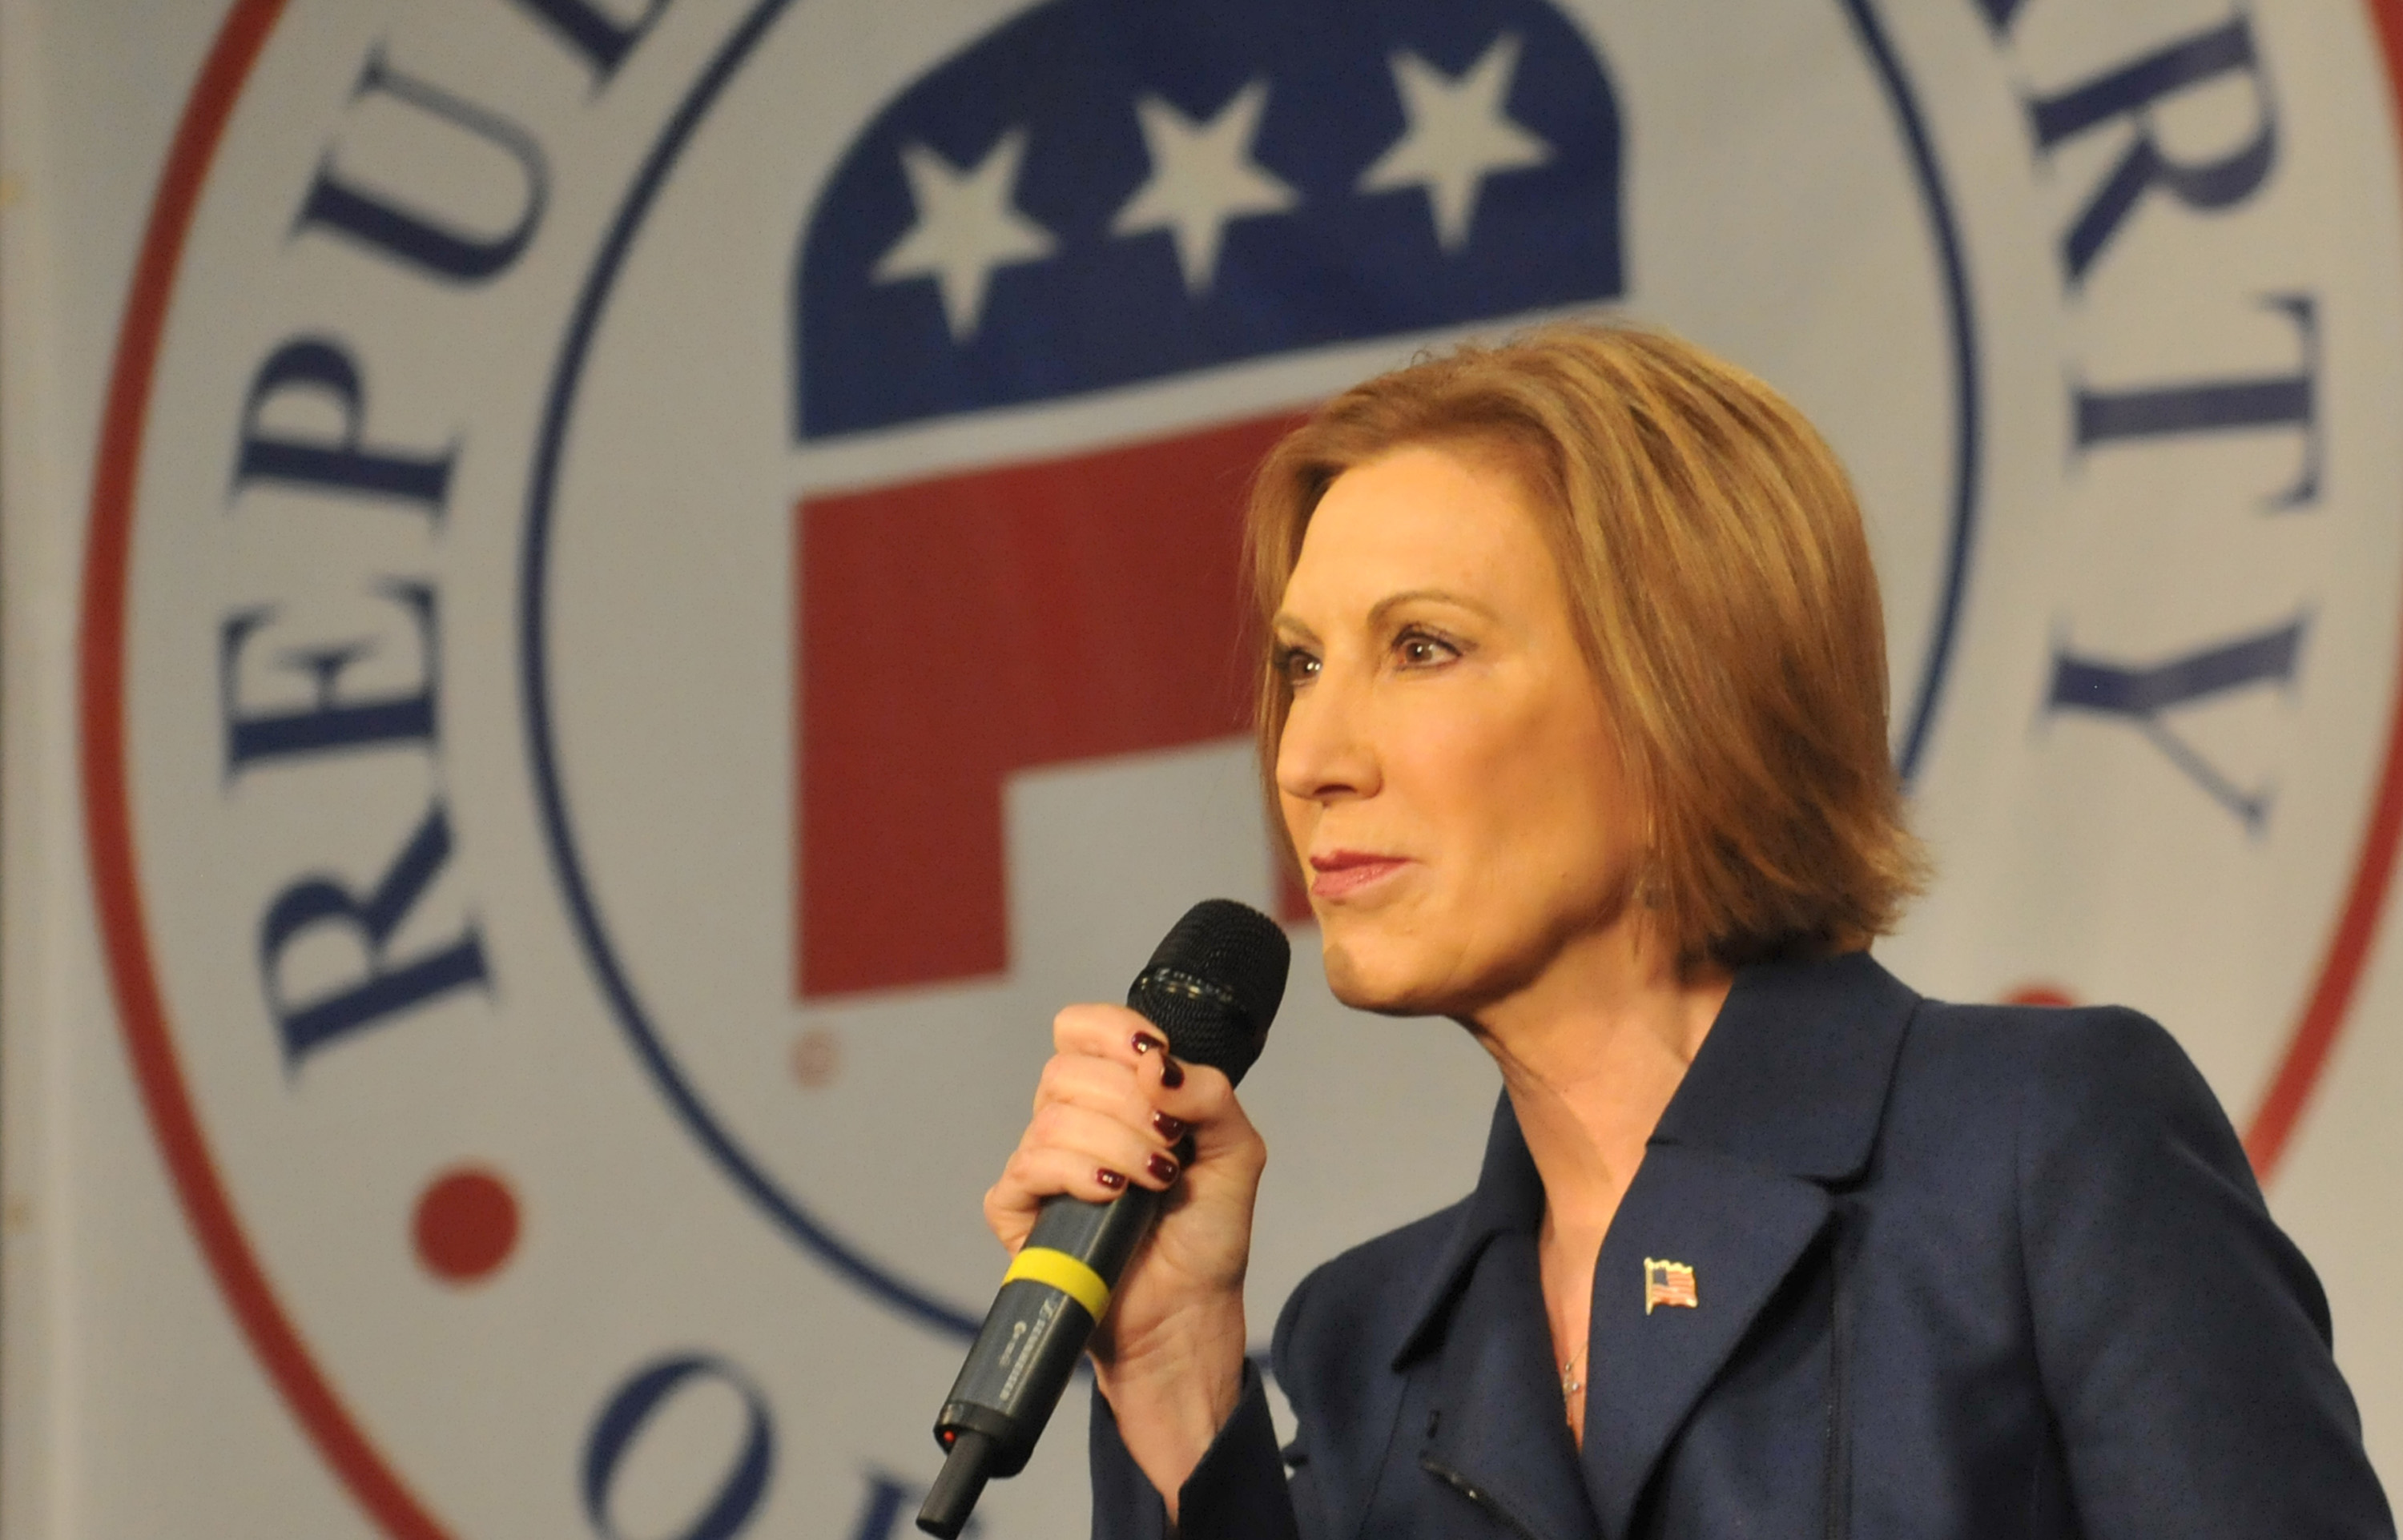 Republican presidential candidate Carly Fiorina speaks at the Growth and Opportunity Party, at the Iowa State Fair on Oct. 31, 2015.